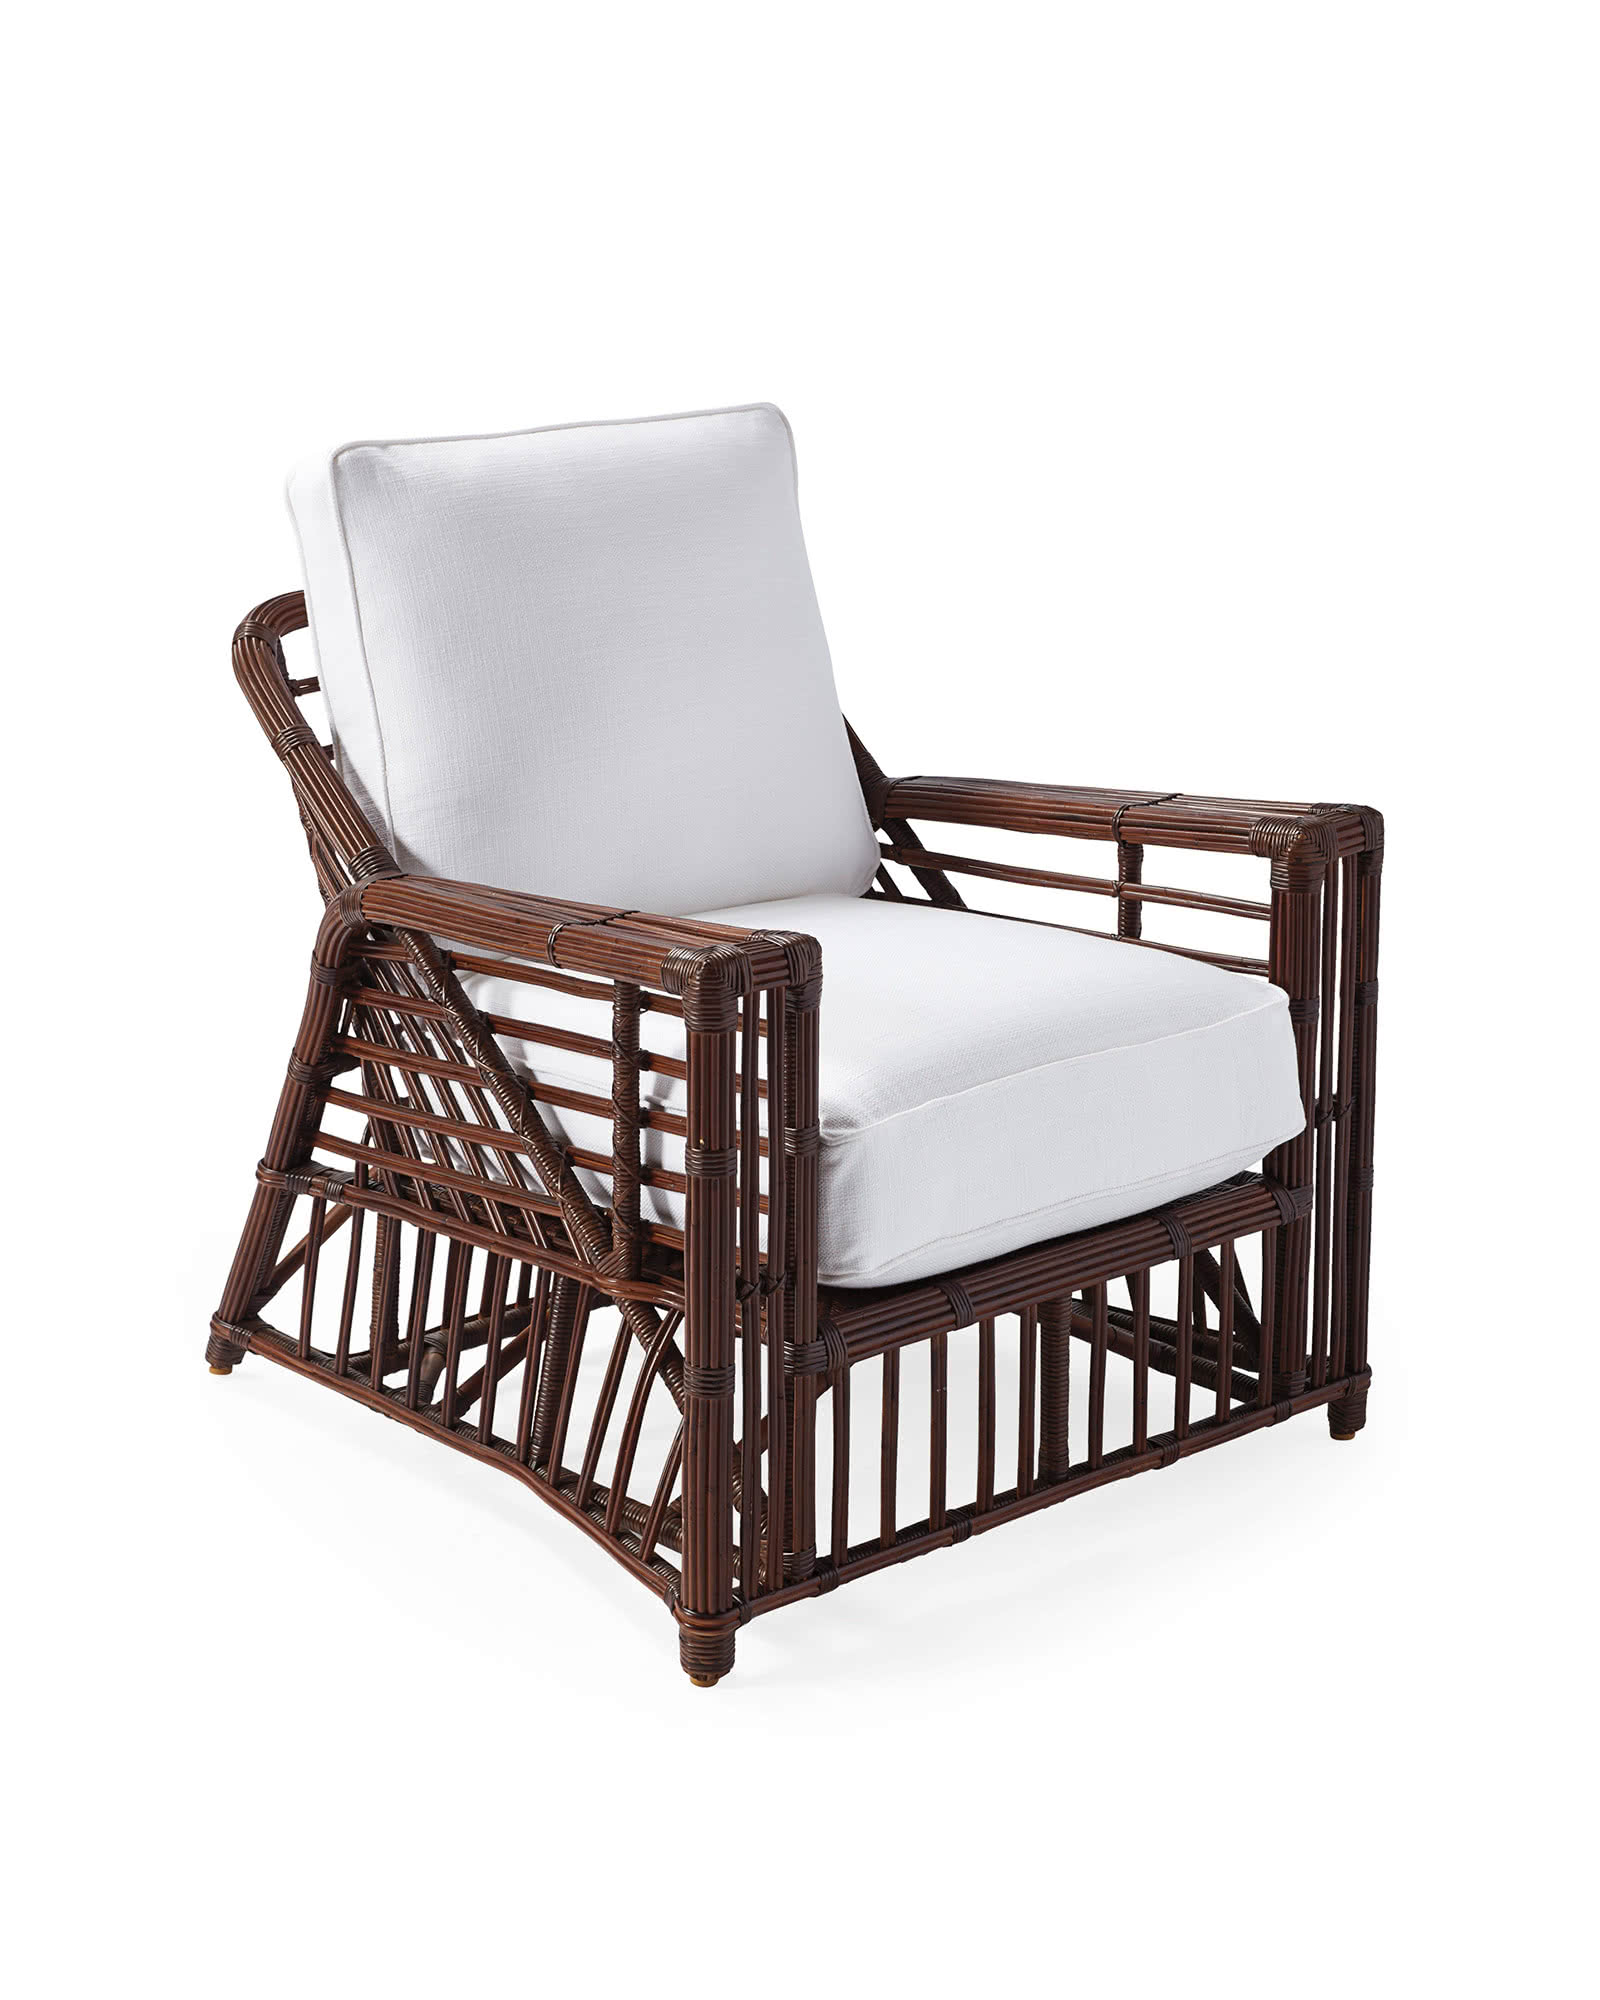 Bungalow Chair,